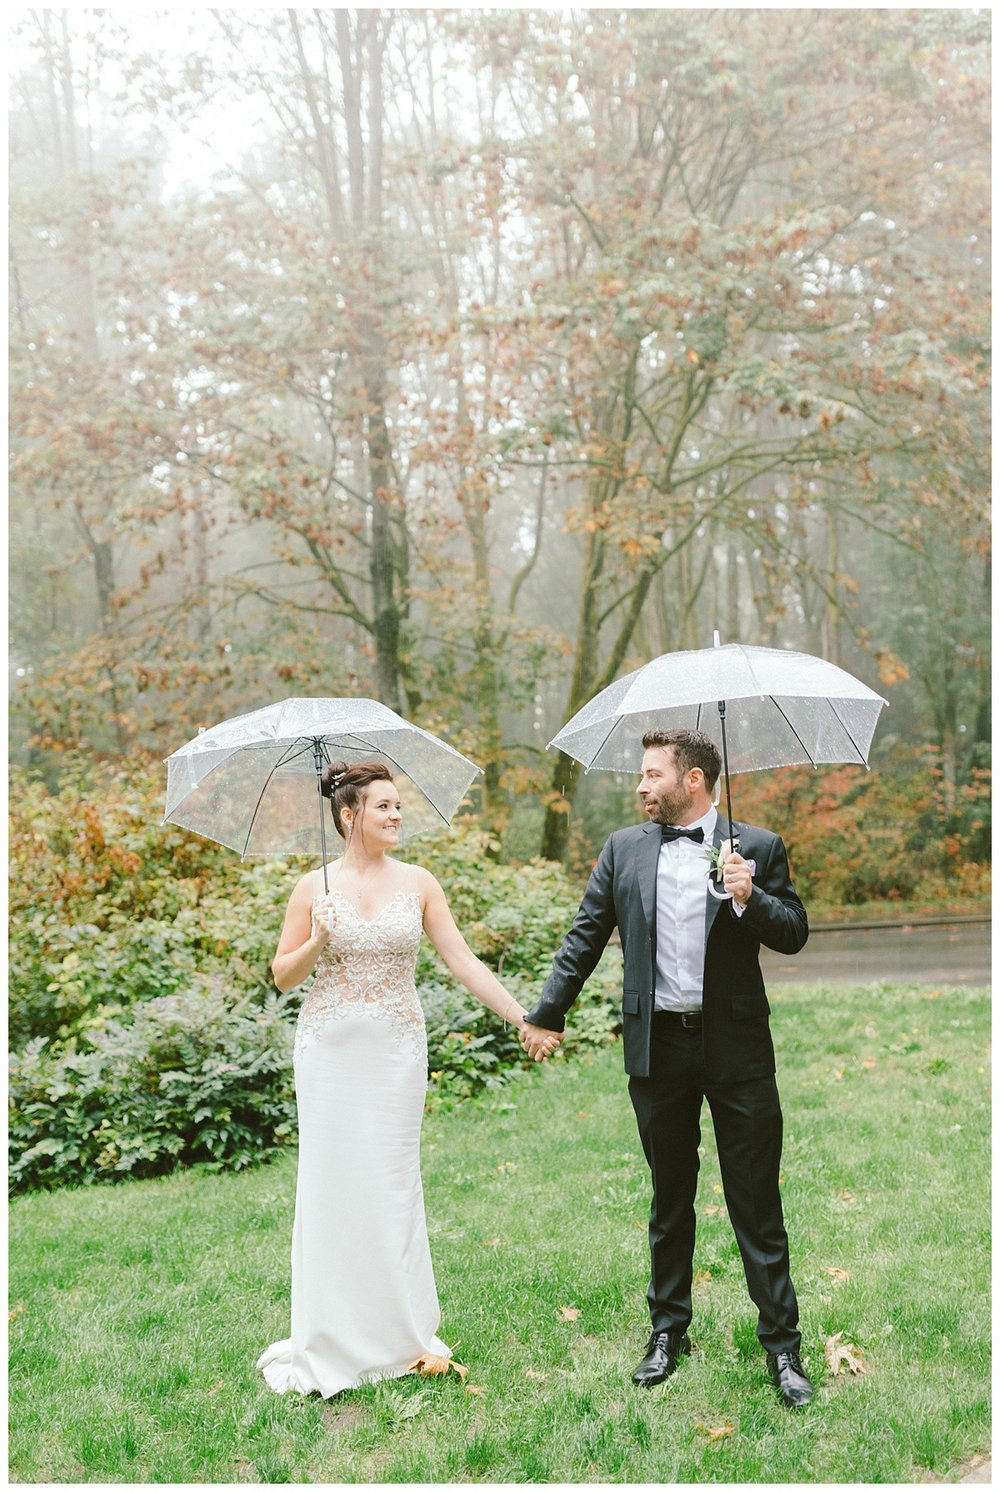 Fall Wedding prewedding photos downtown Vancouver BC (Stanley Park)